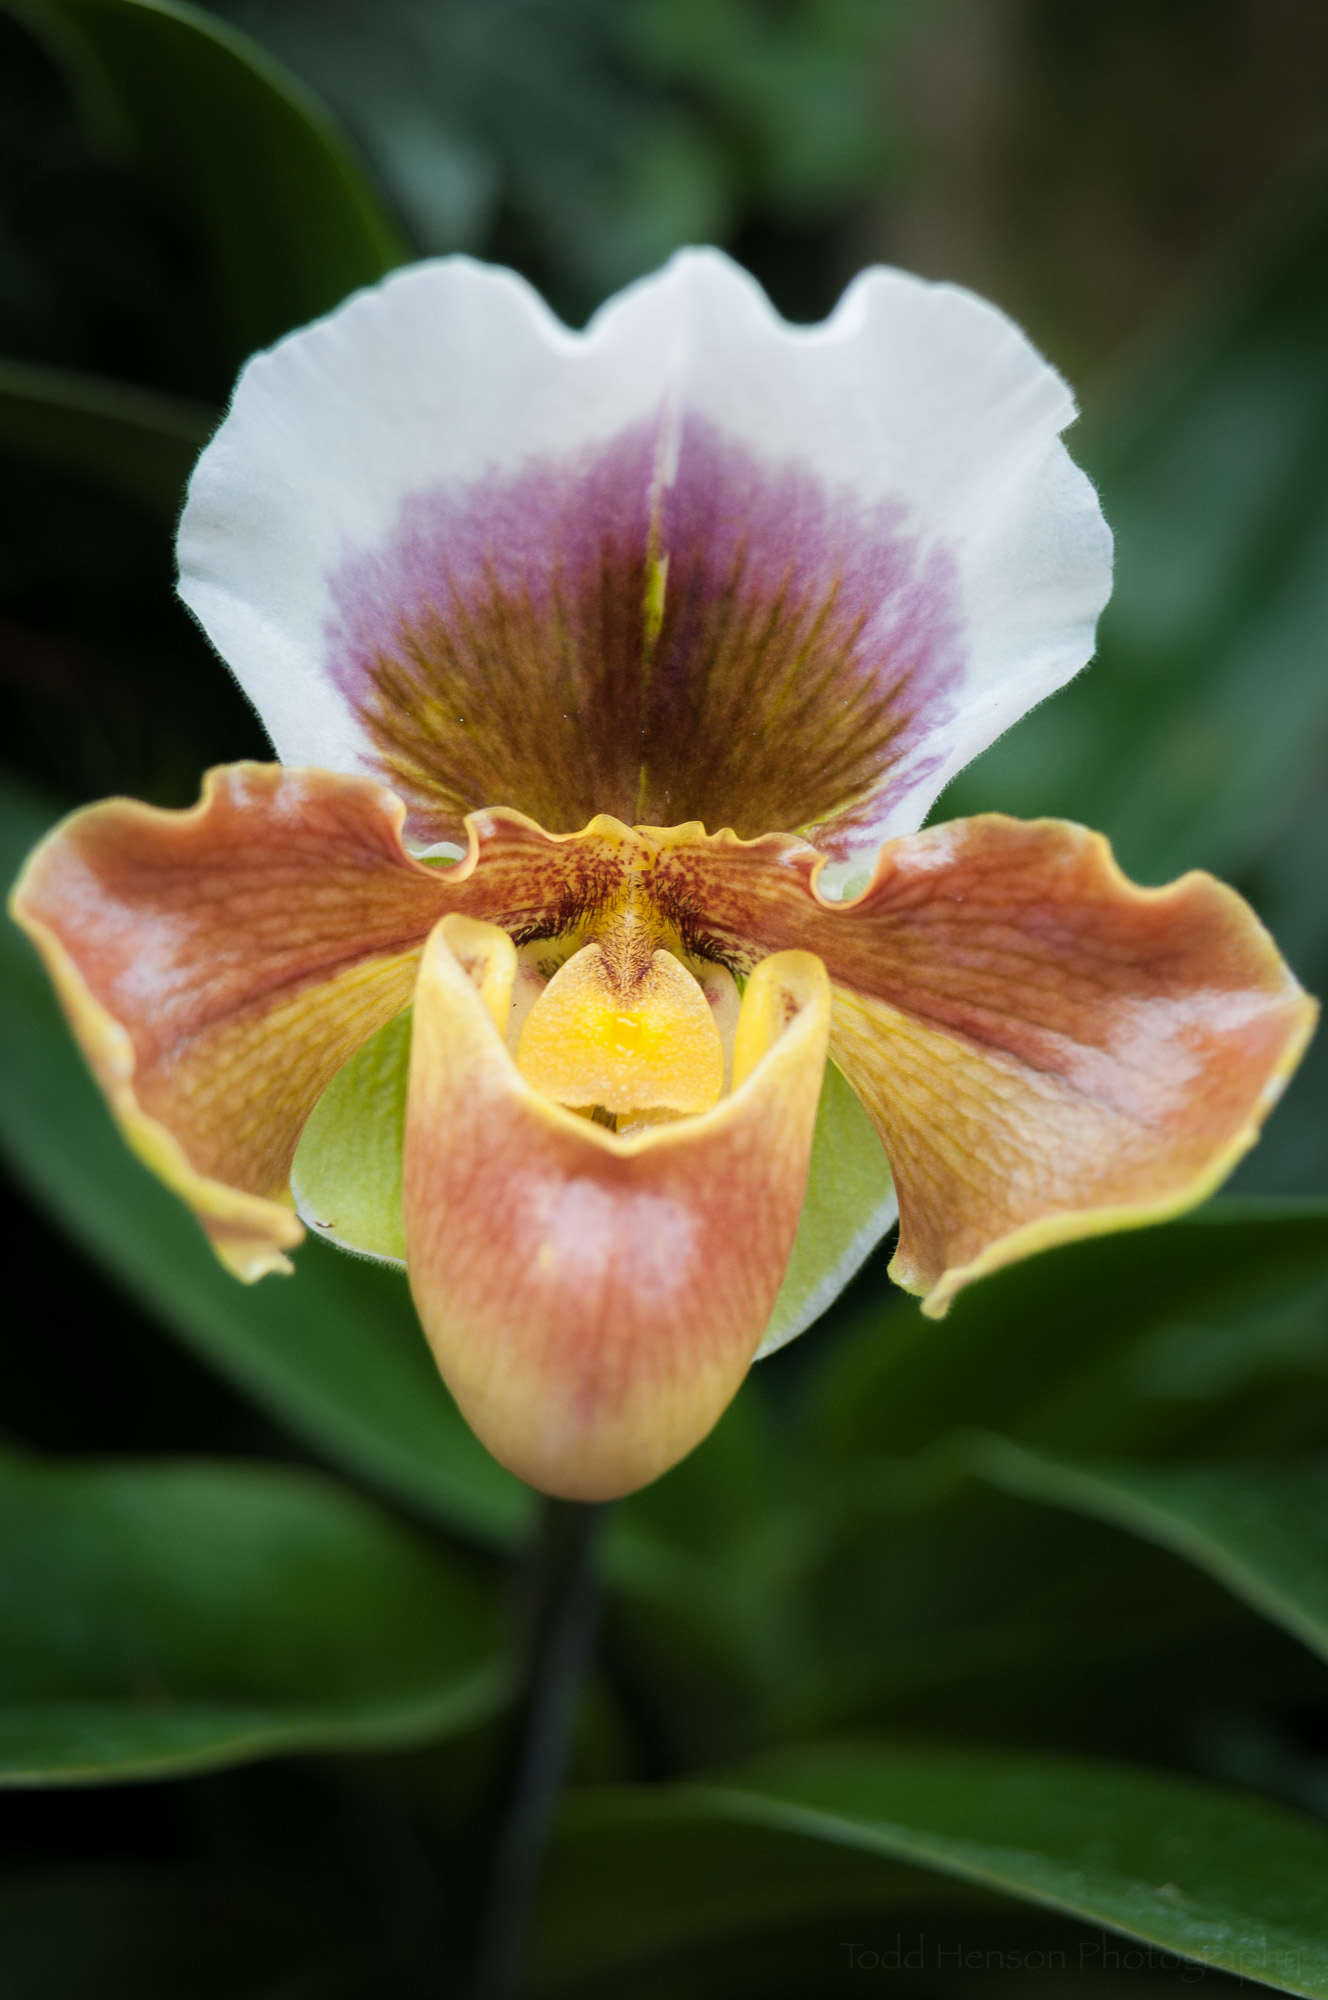 Orchids come in so many shapes, colors, and patterns